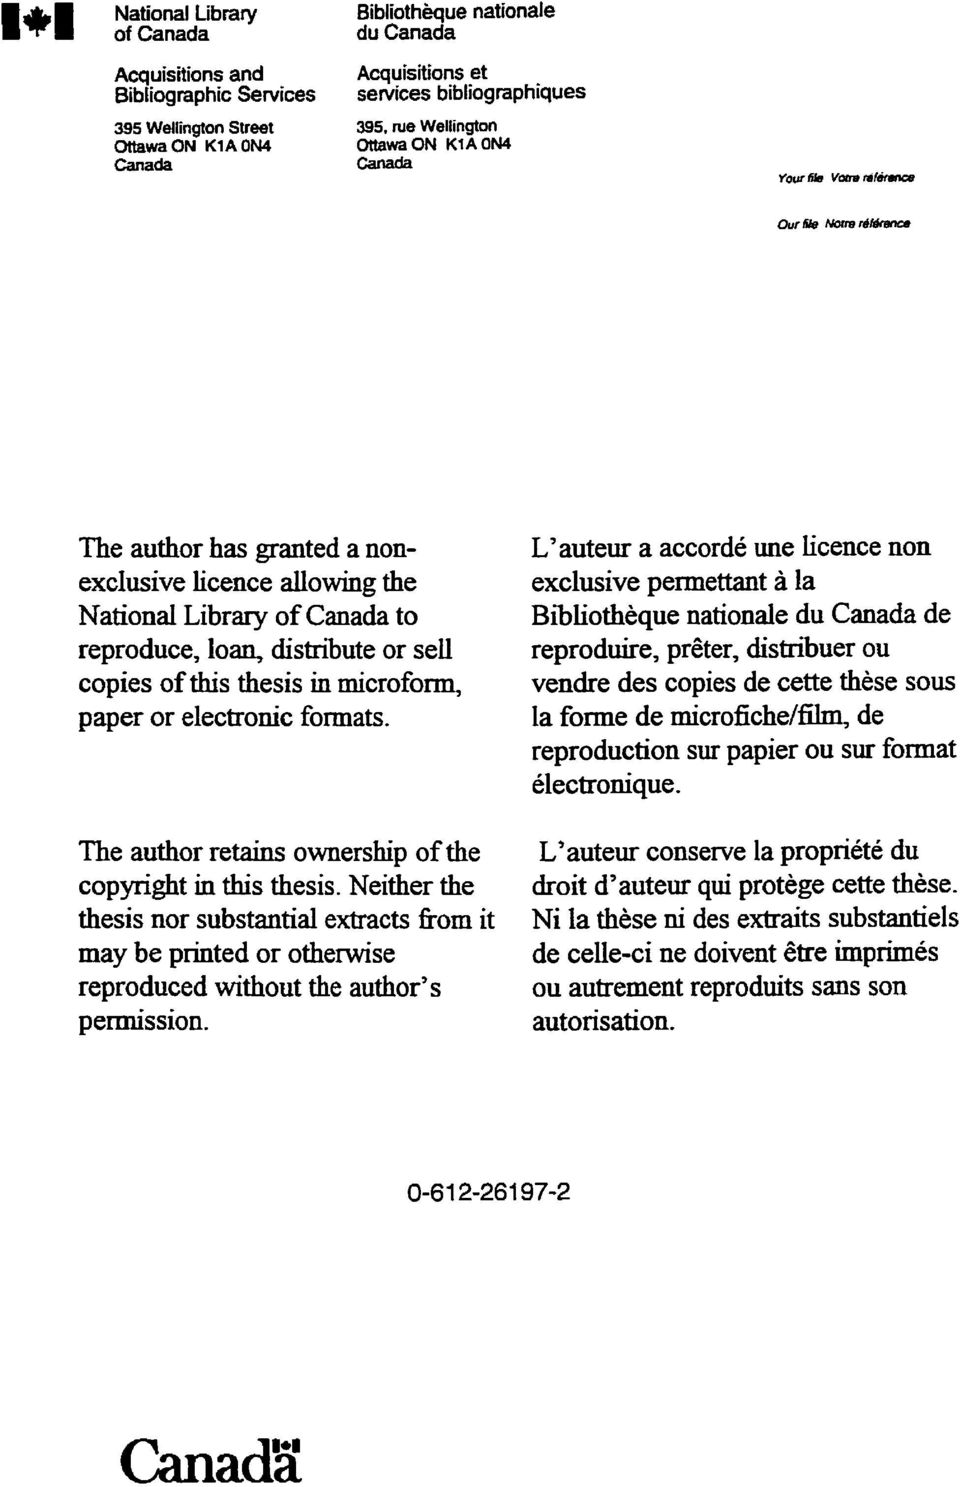 this thesis in microfonn, paper or electronic formats. The author retains ownership of the copyright in this thesis.